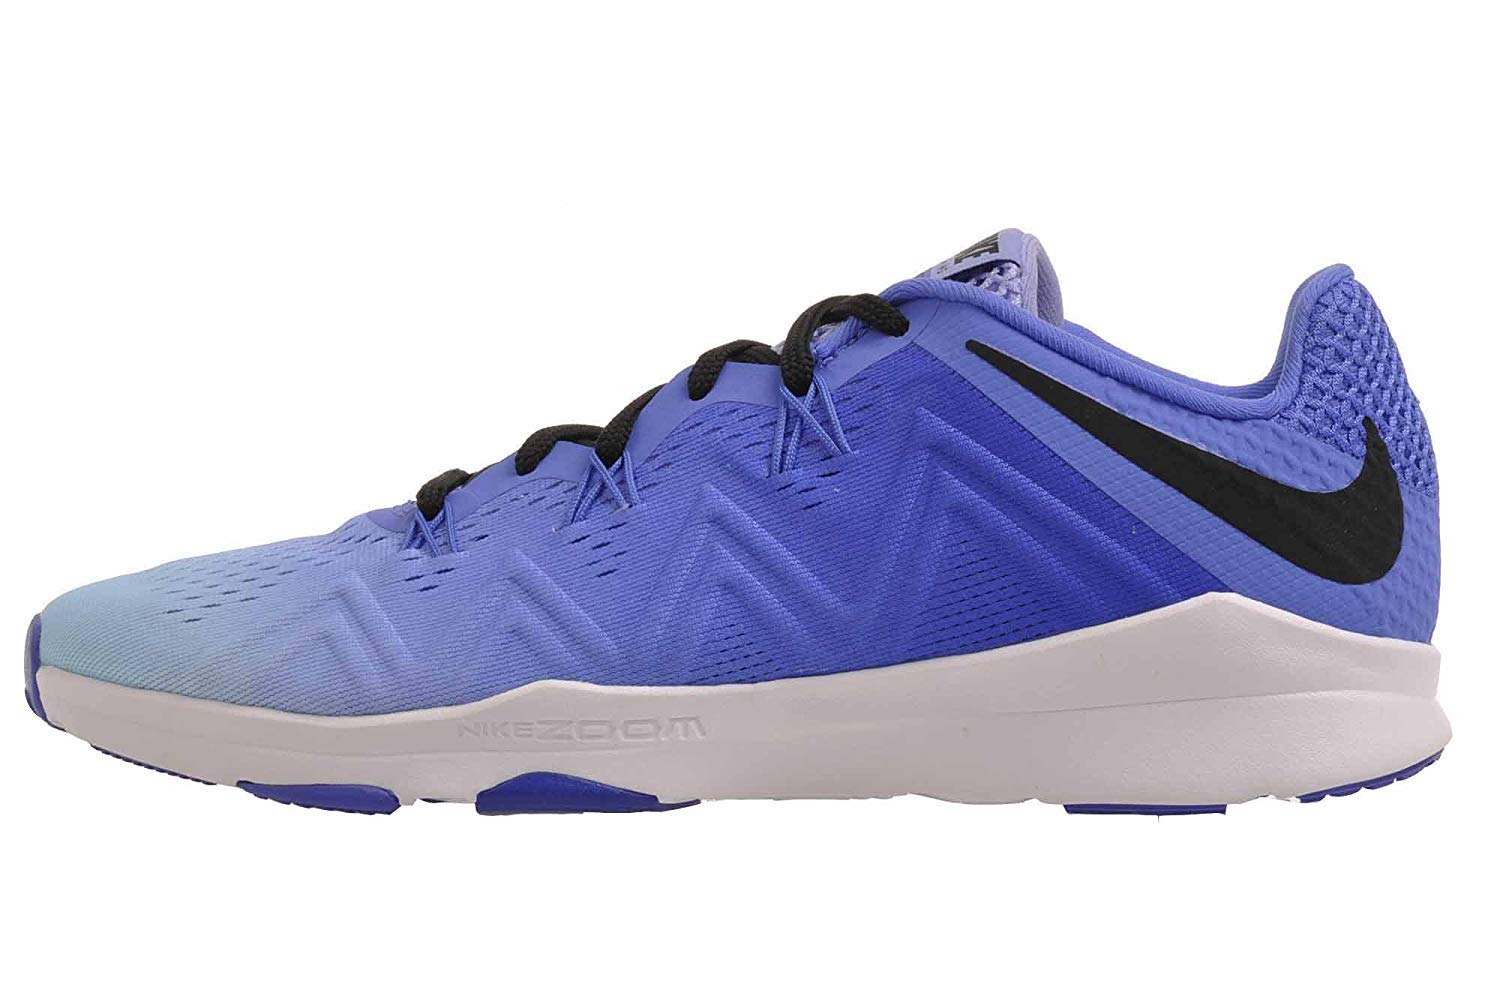 Nike Women's Air Zoom Condition TR Fade